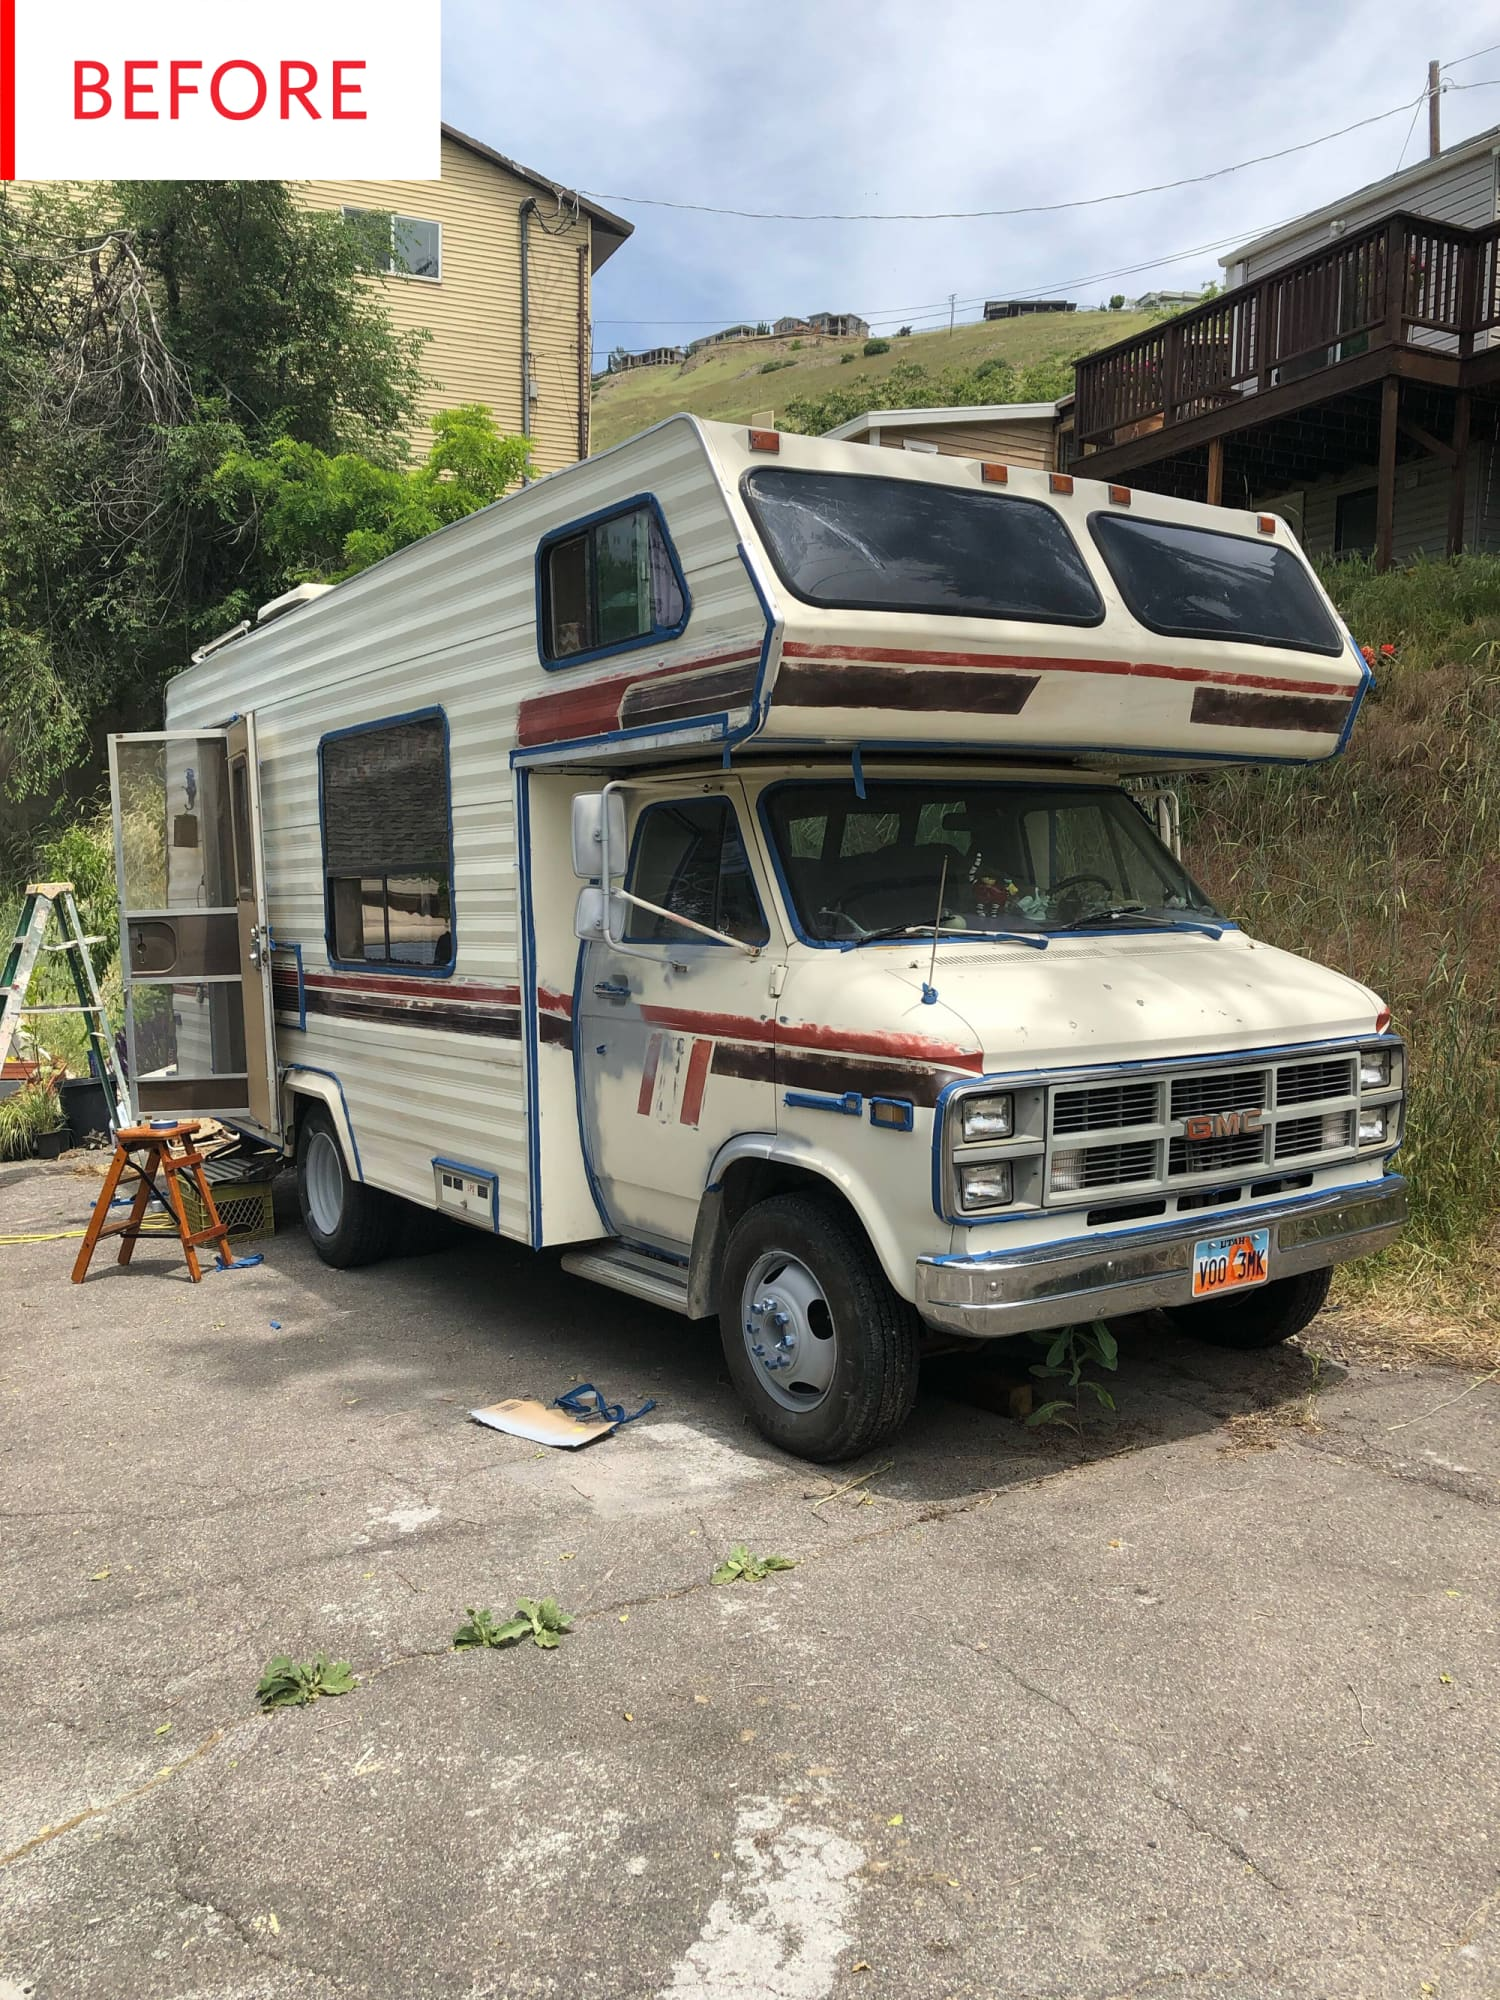 Before and After: This Vintage RV Makeover Is Unlike Anything You've Ever Seen Before